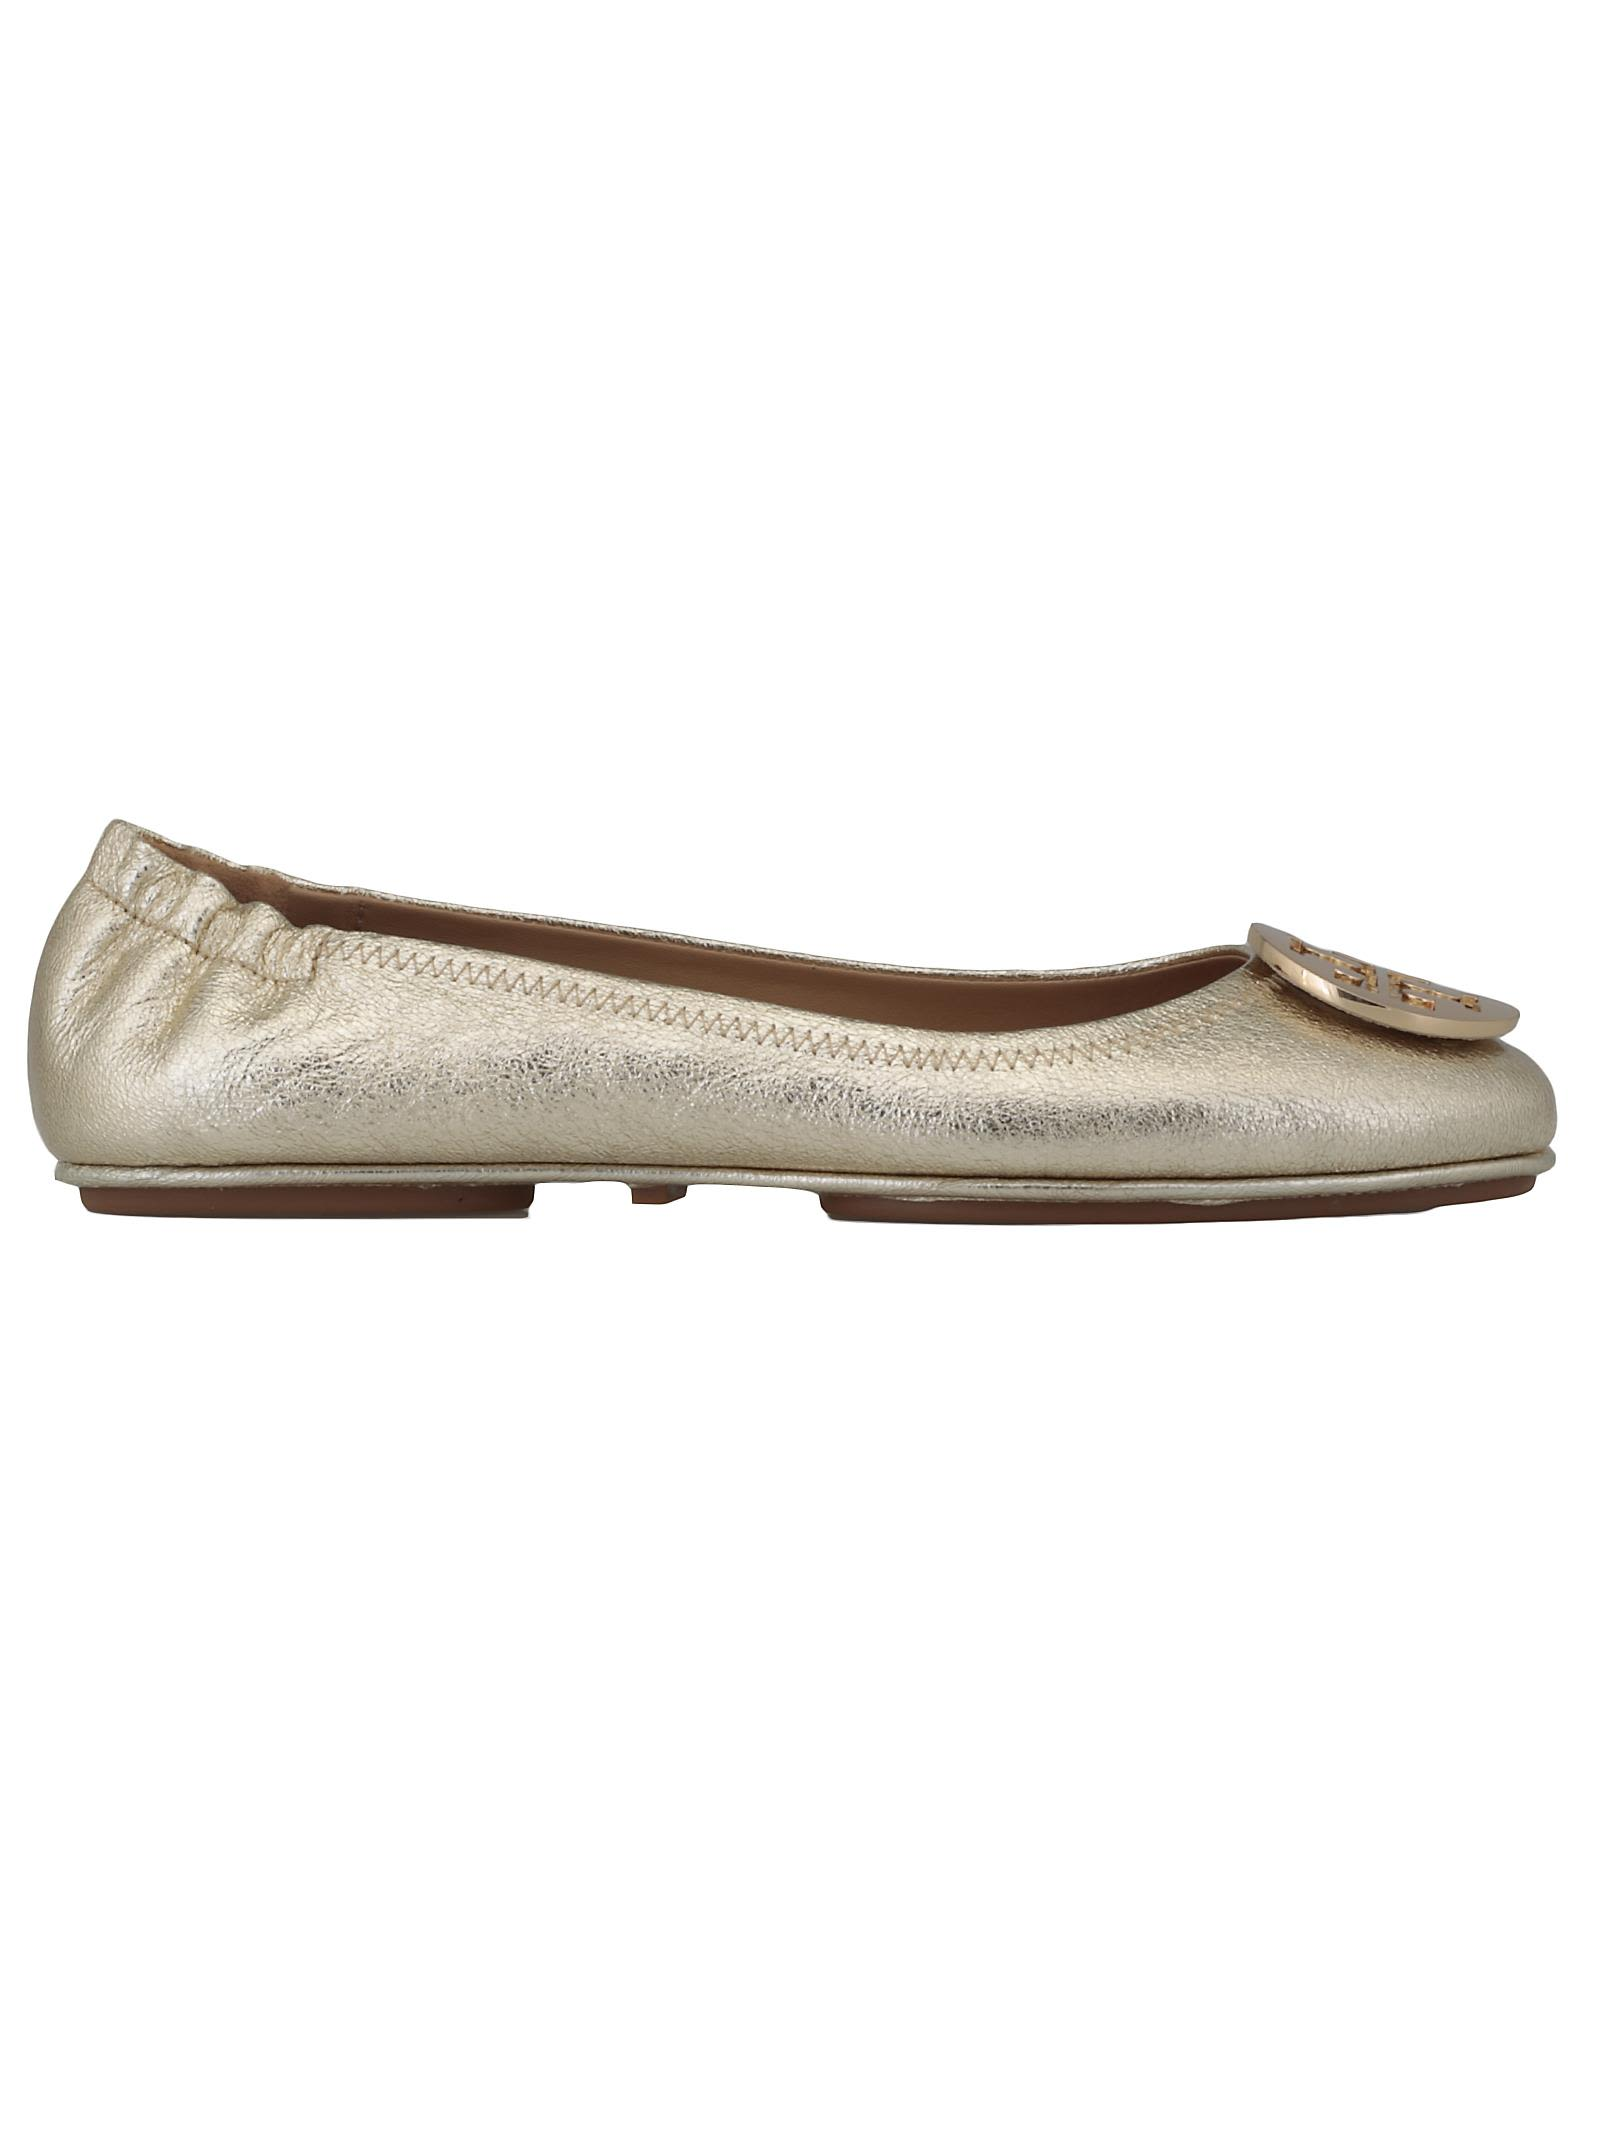 d4d9c4907c3504 Tory Burch Minnie Travel Ballet Flat In Spark Gold